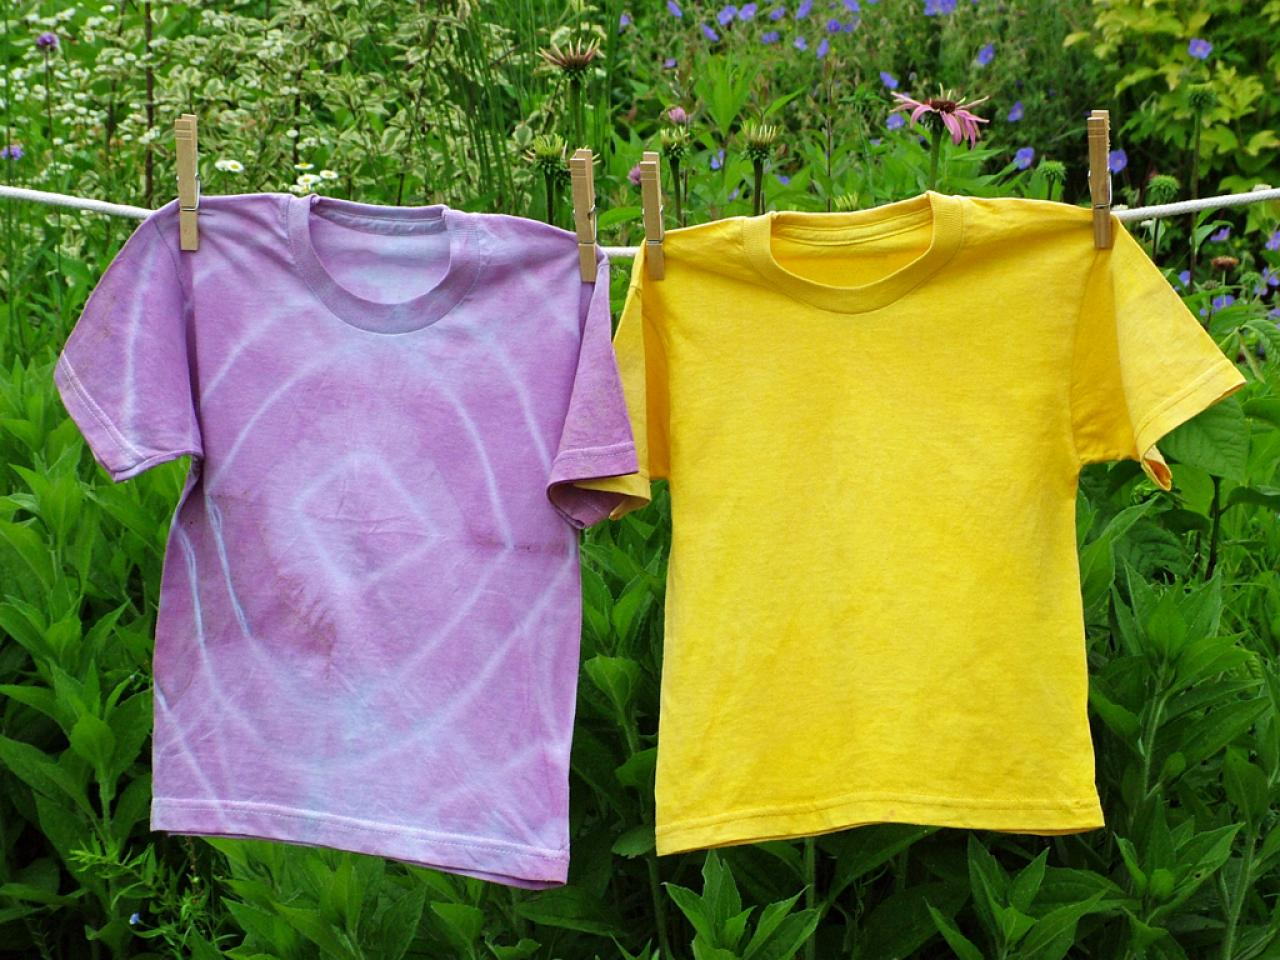 Dye A Shirt With Veggies And Fruits Hgtv